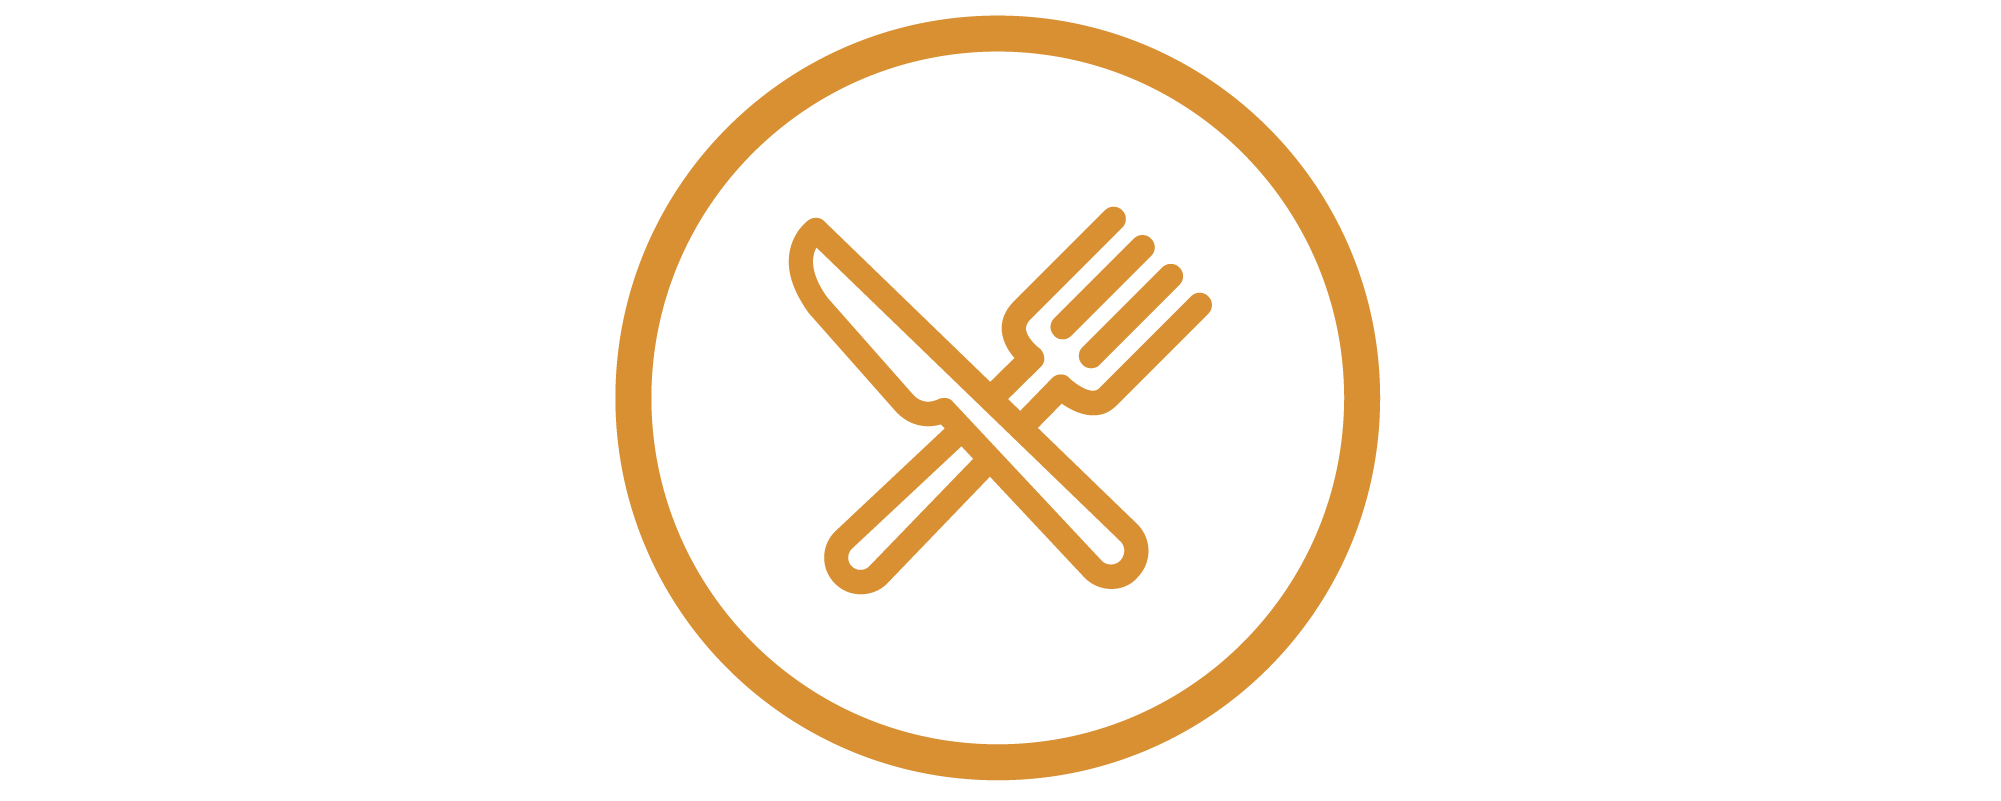 Food_Icon.png